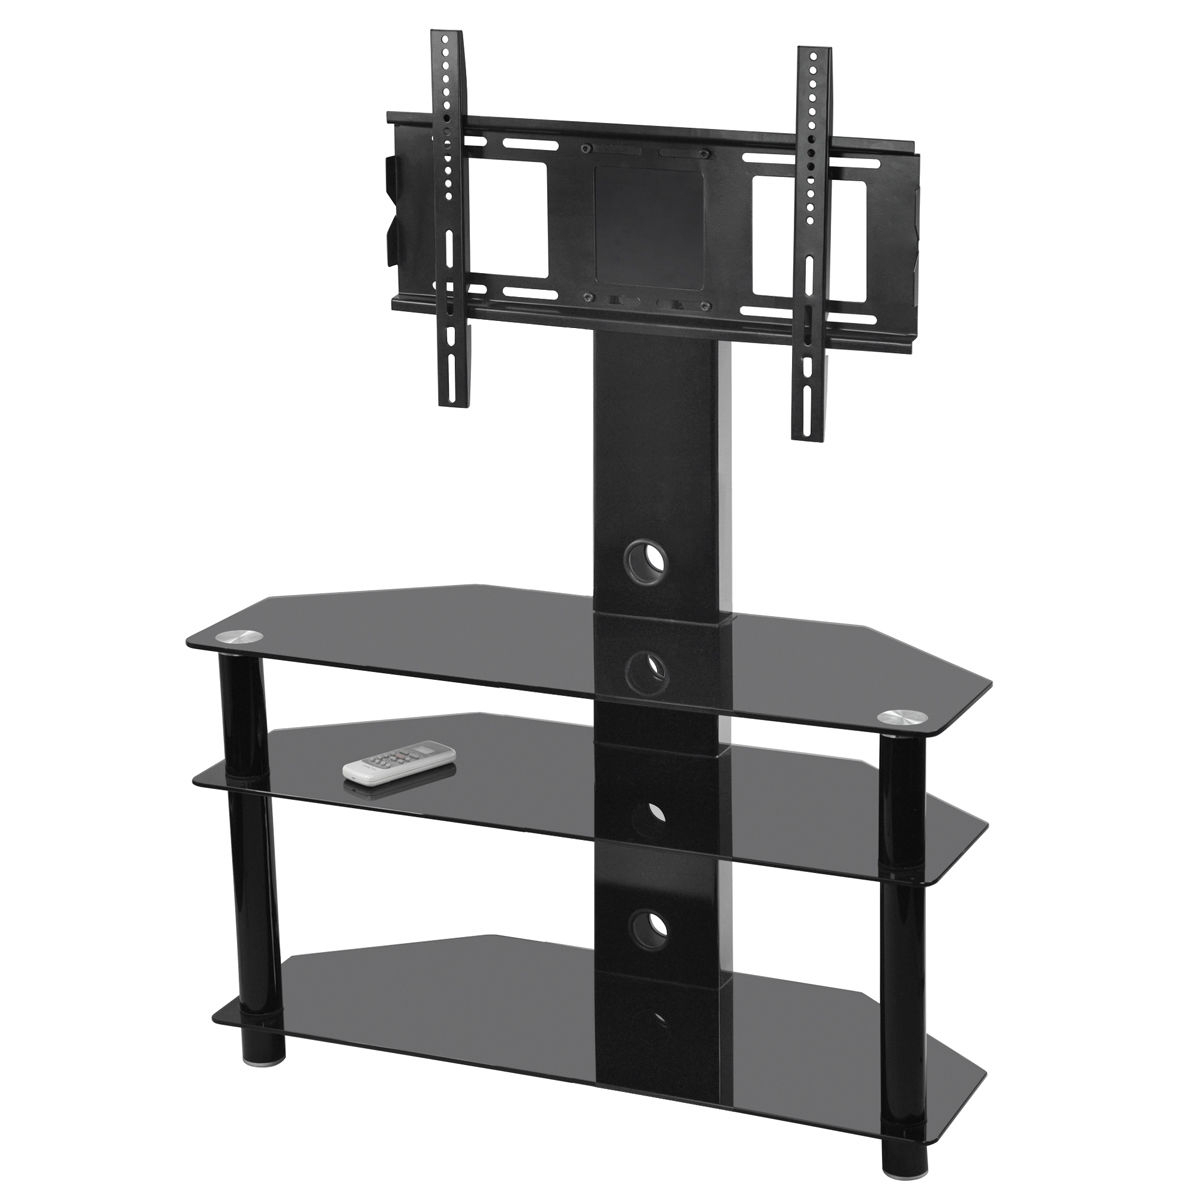 Most Popular Small Tv Stand With Mount Black Glthree Tiers Shelves Corner For Throughout Telly Tv Stands (View 3 of 20)